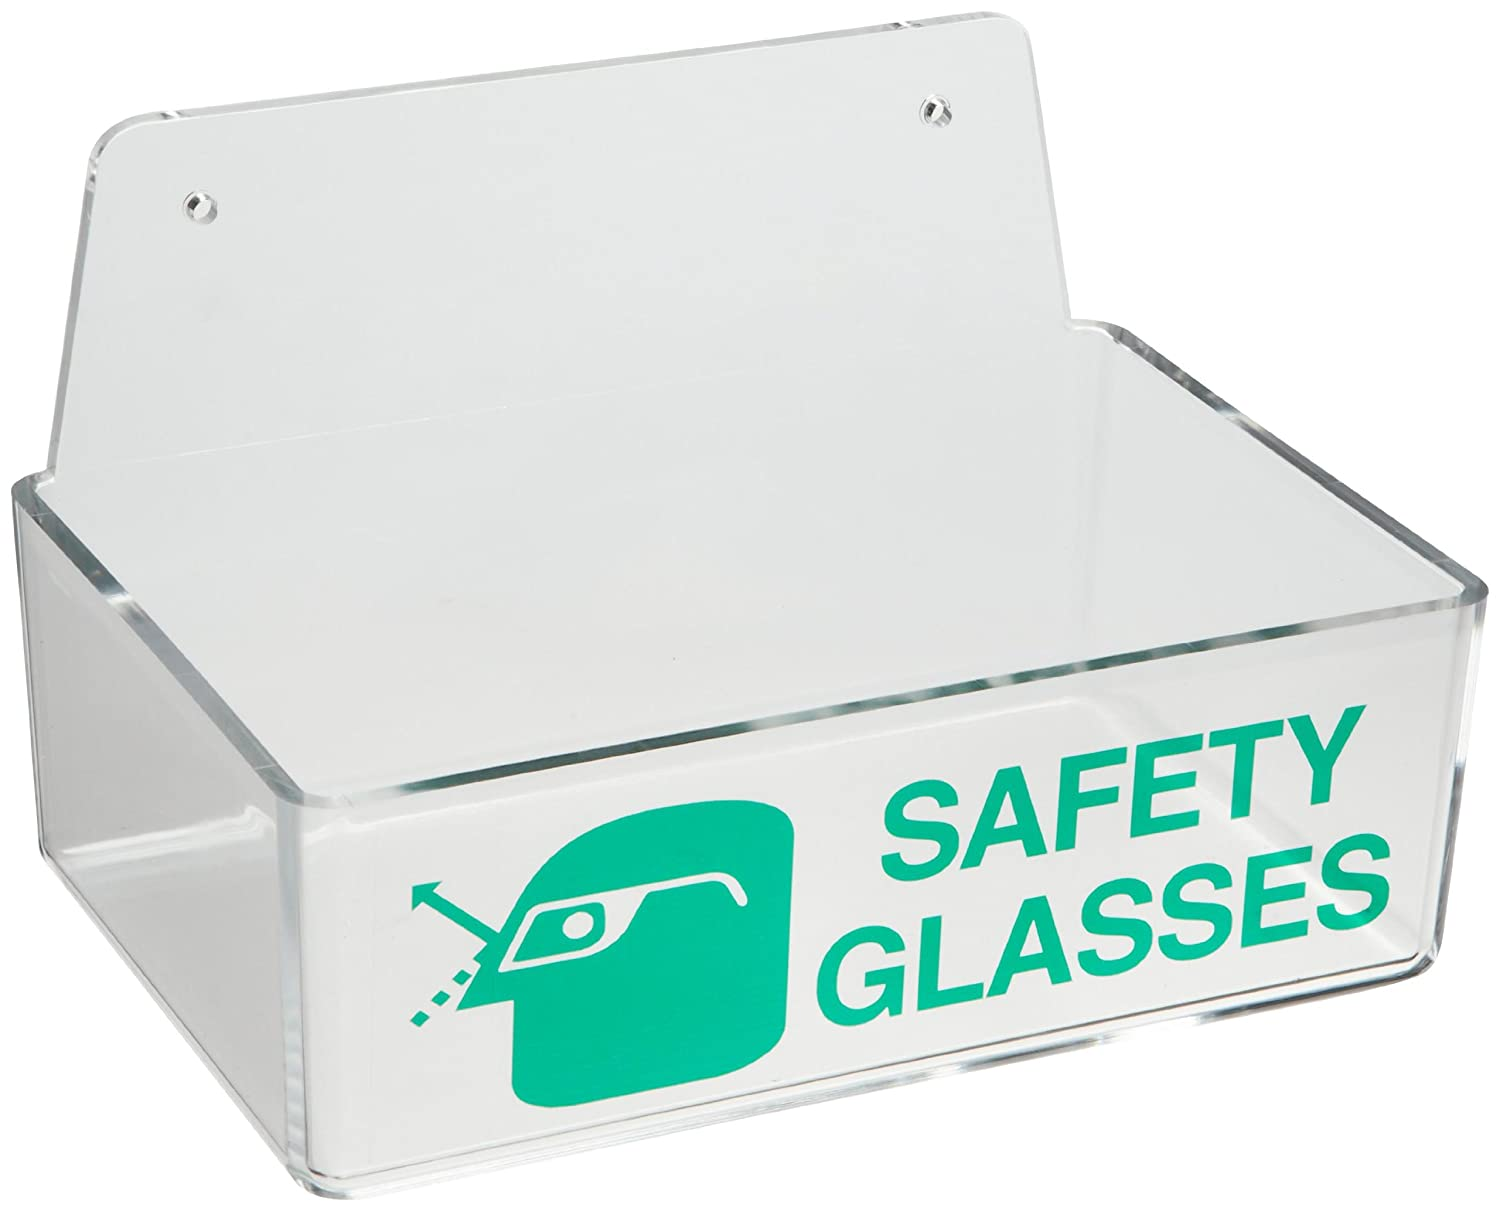 """B003X2749C Brady Safety Glasses Holder - Green Text on Clear Plastic, Legend """"Safety Glasses"""" - 3"""" Height, 9"""" Width, 6"""" Depth - 45234 71d2VOdaMIL"""